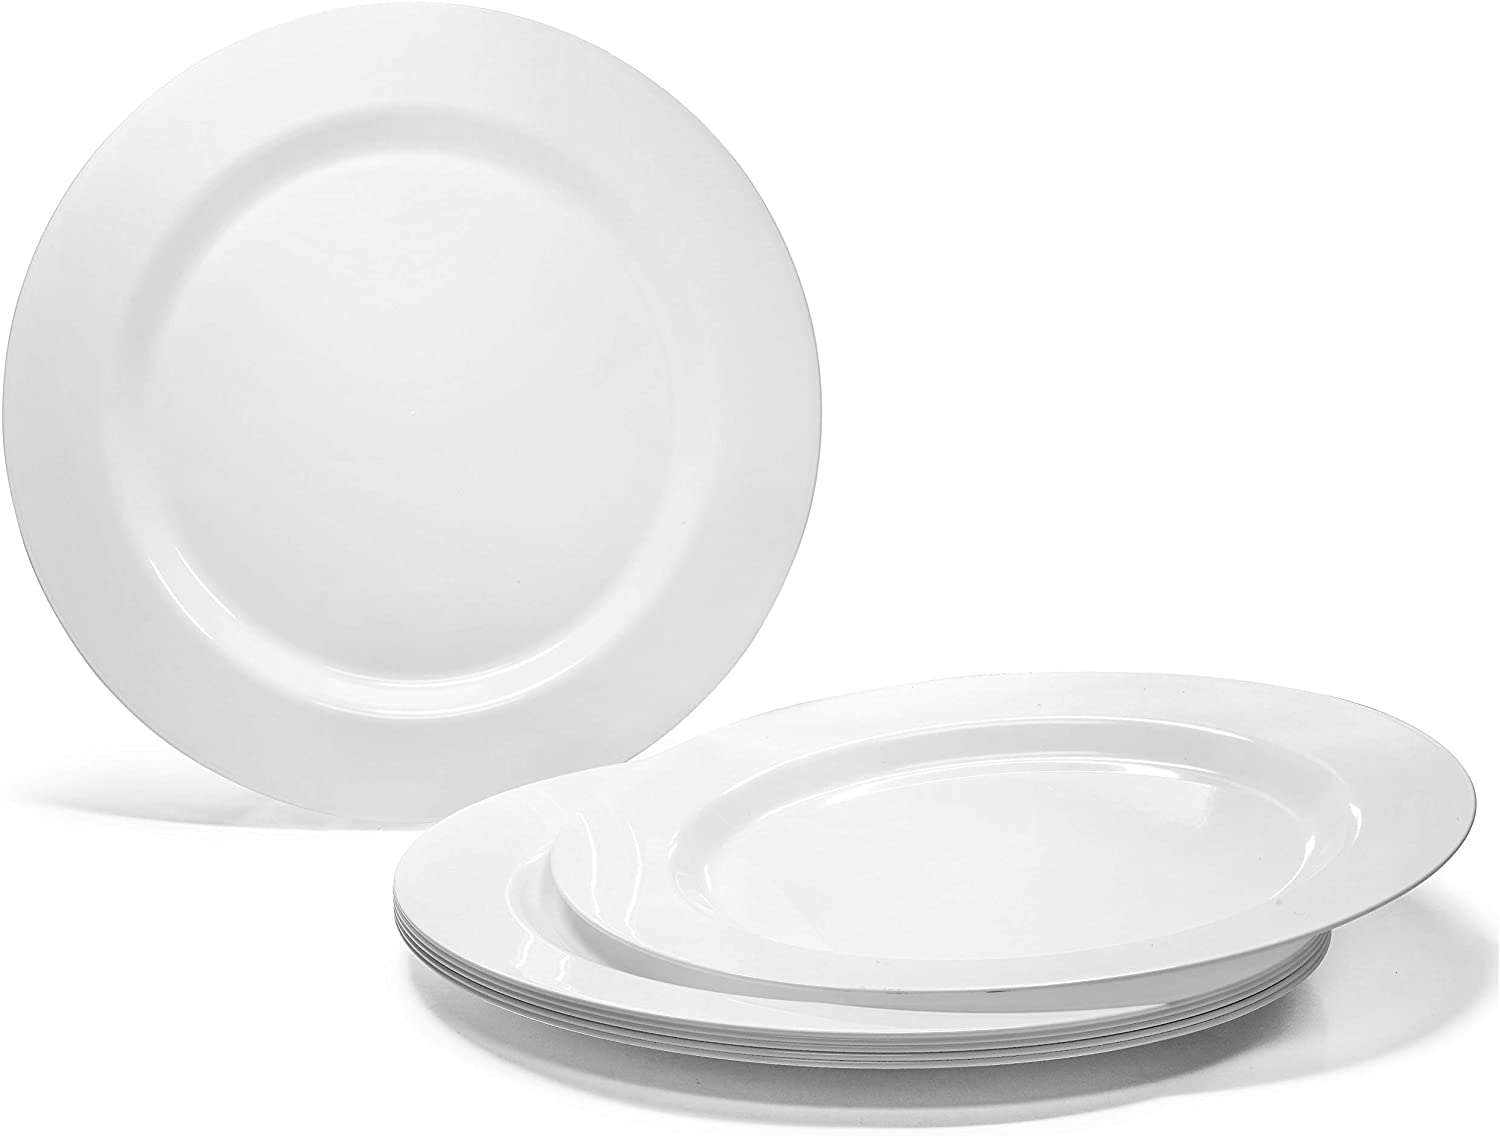 Occasions 120 Plates Pack Heavyweight Disposable Wedding Party Plastic Plates 6 25 Dessert Bread Plate Plain White Kitchen Dining